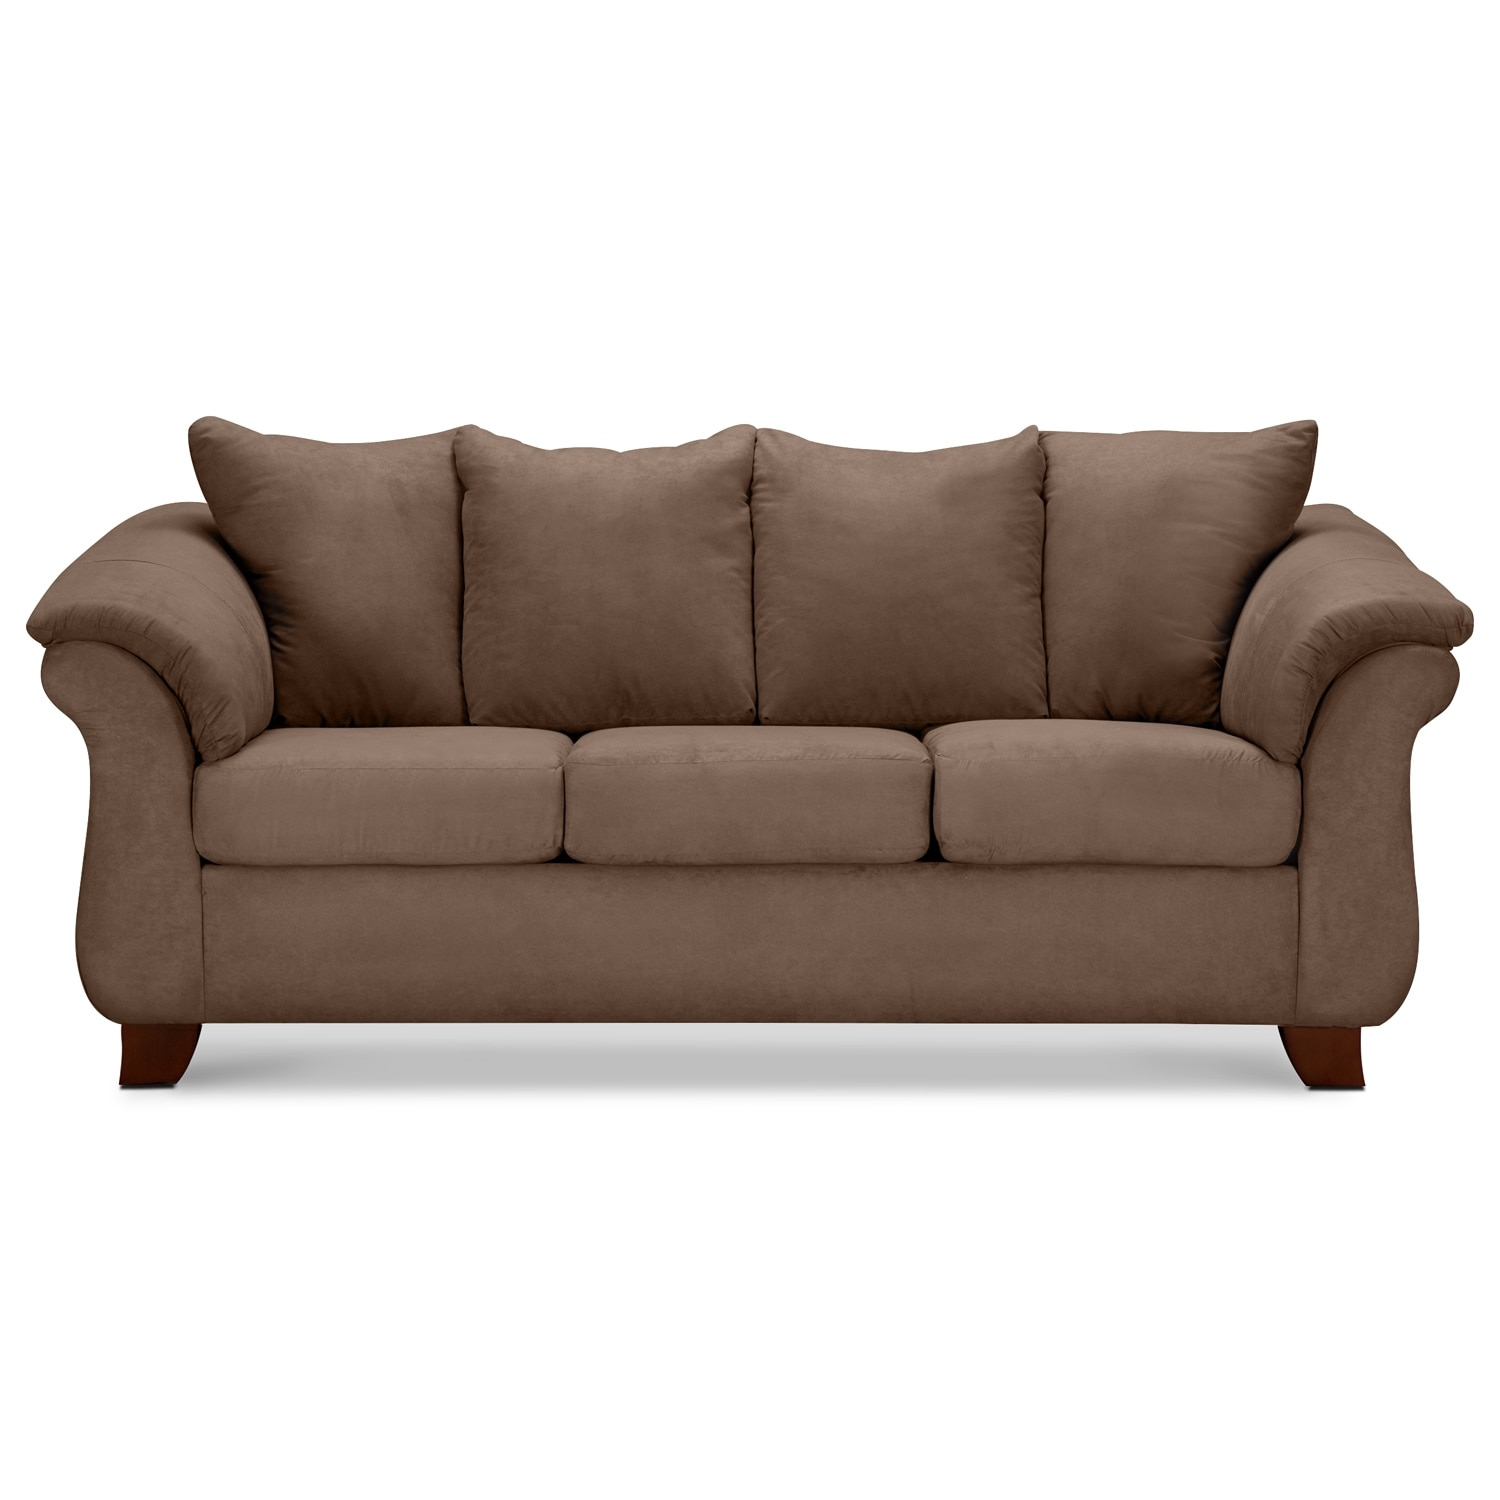 Incroyable Inspirational Taupe Sofa 76 In Contemporary Sofa Inspiration With Taupe Sofa